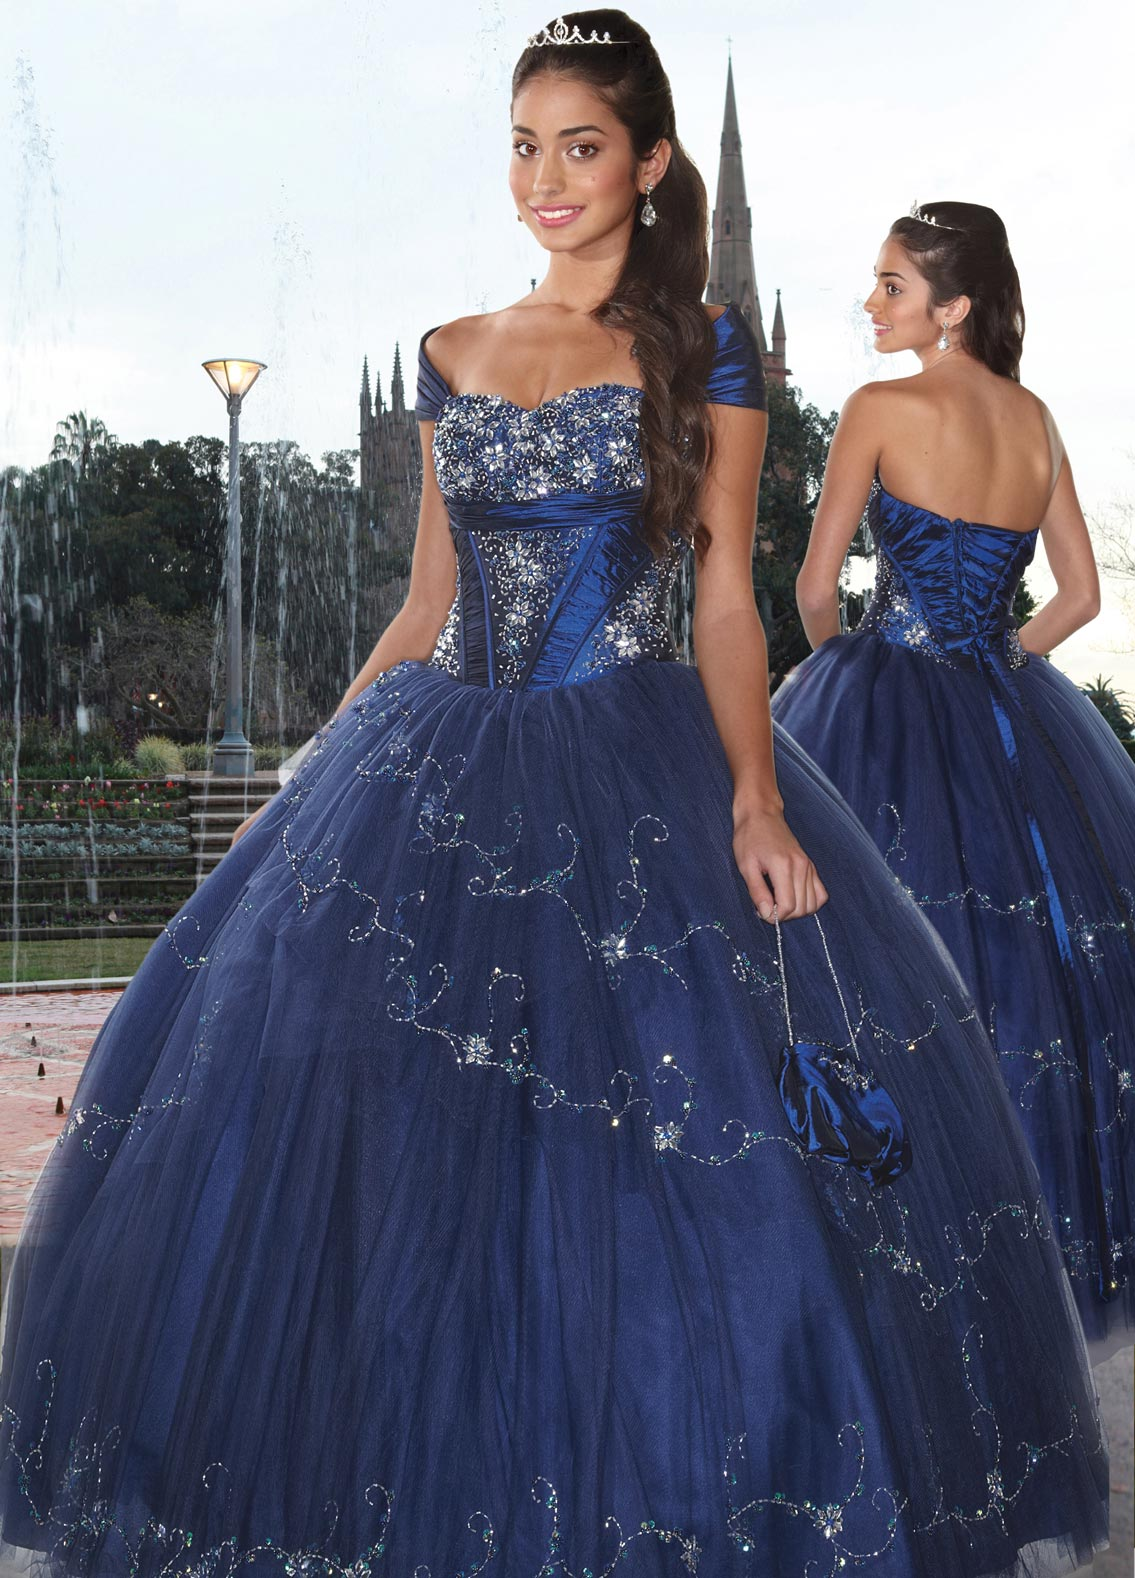 Dark Royal Blue Ball Gown Cap Sleeved And Sweetheart Lace Up Full Length Quinceanera Dresses With Beading Embroidery